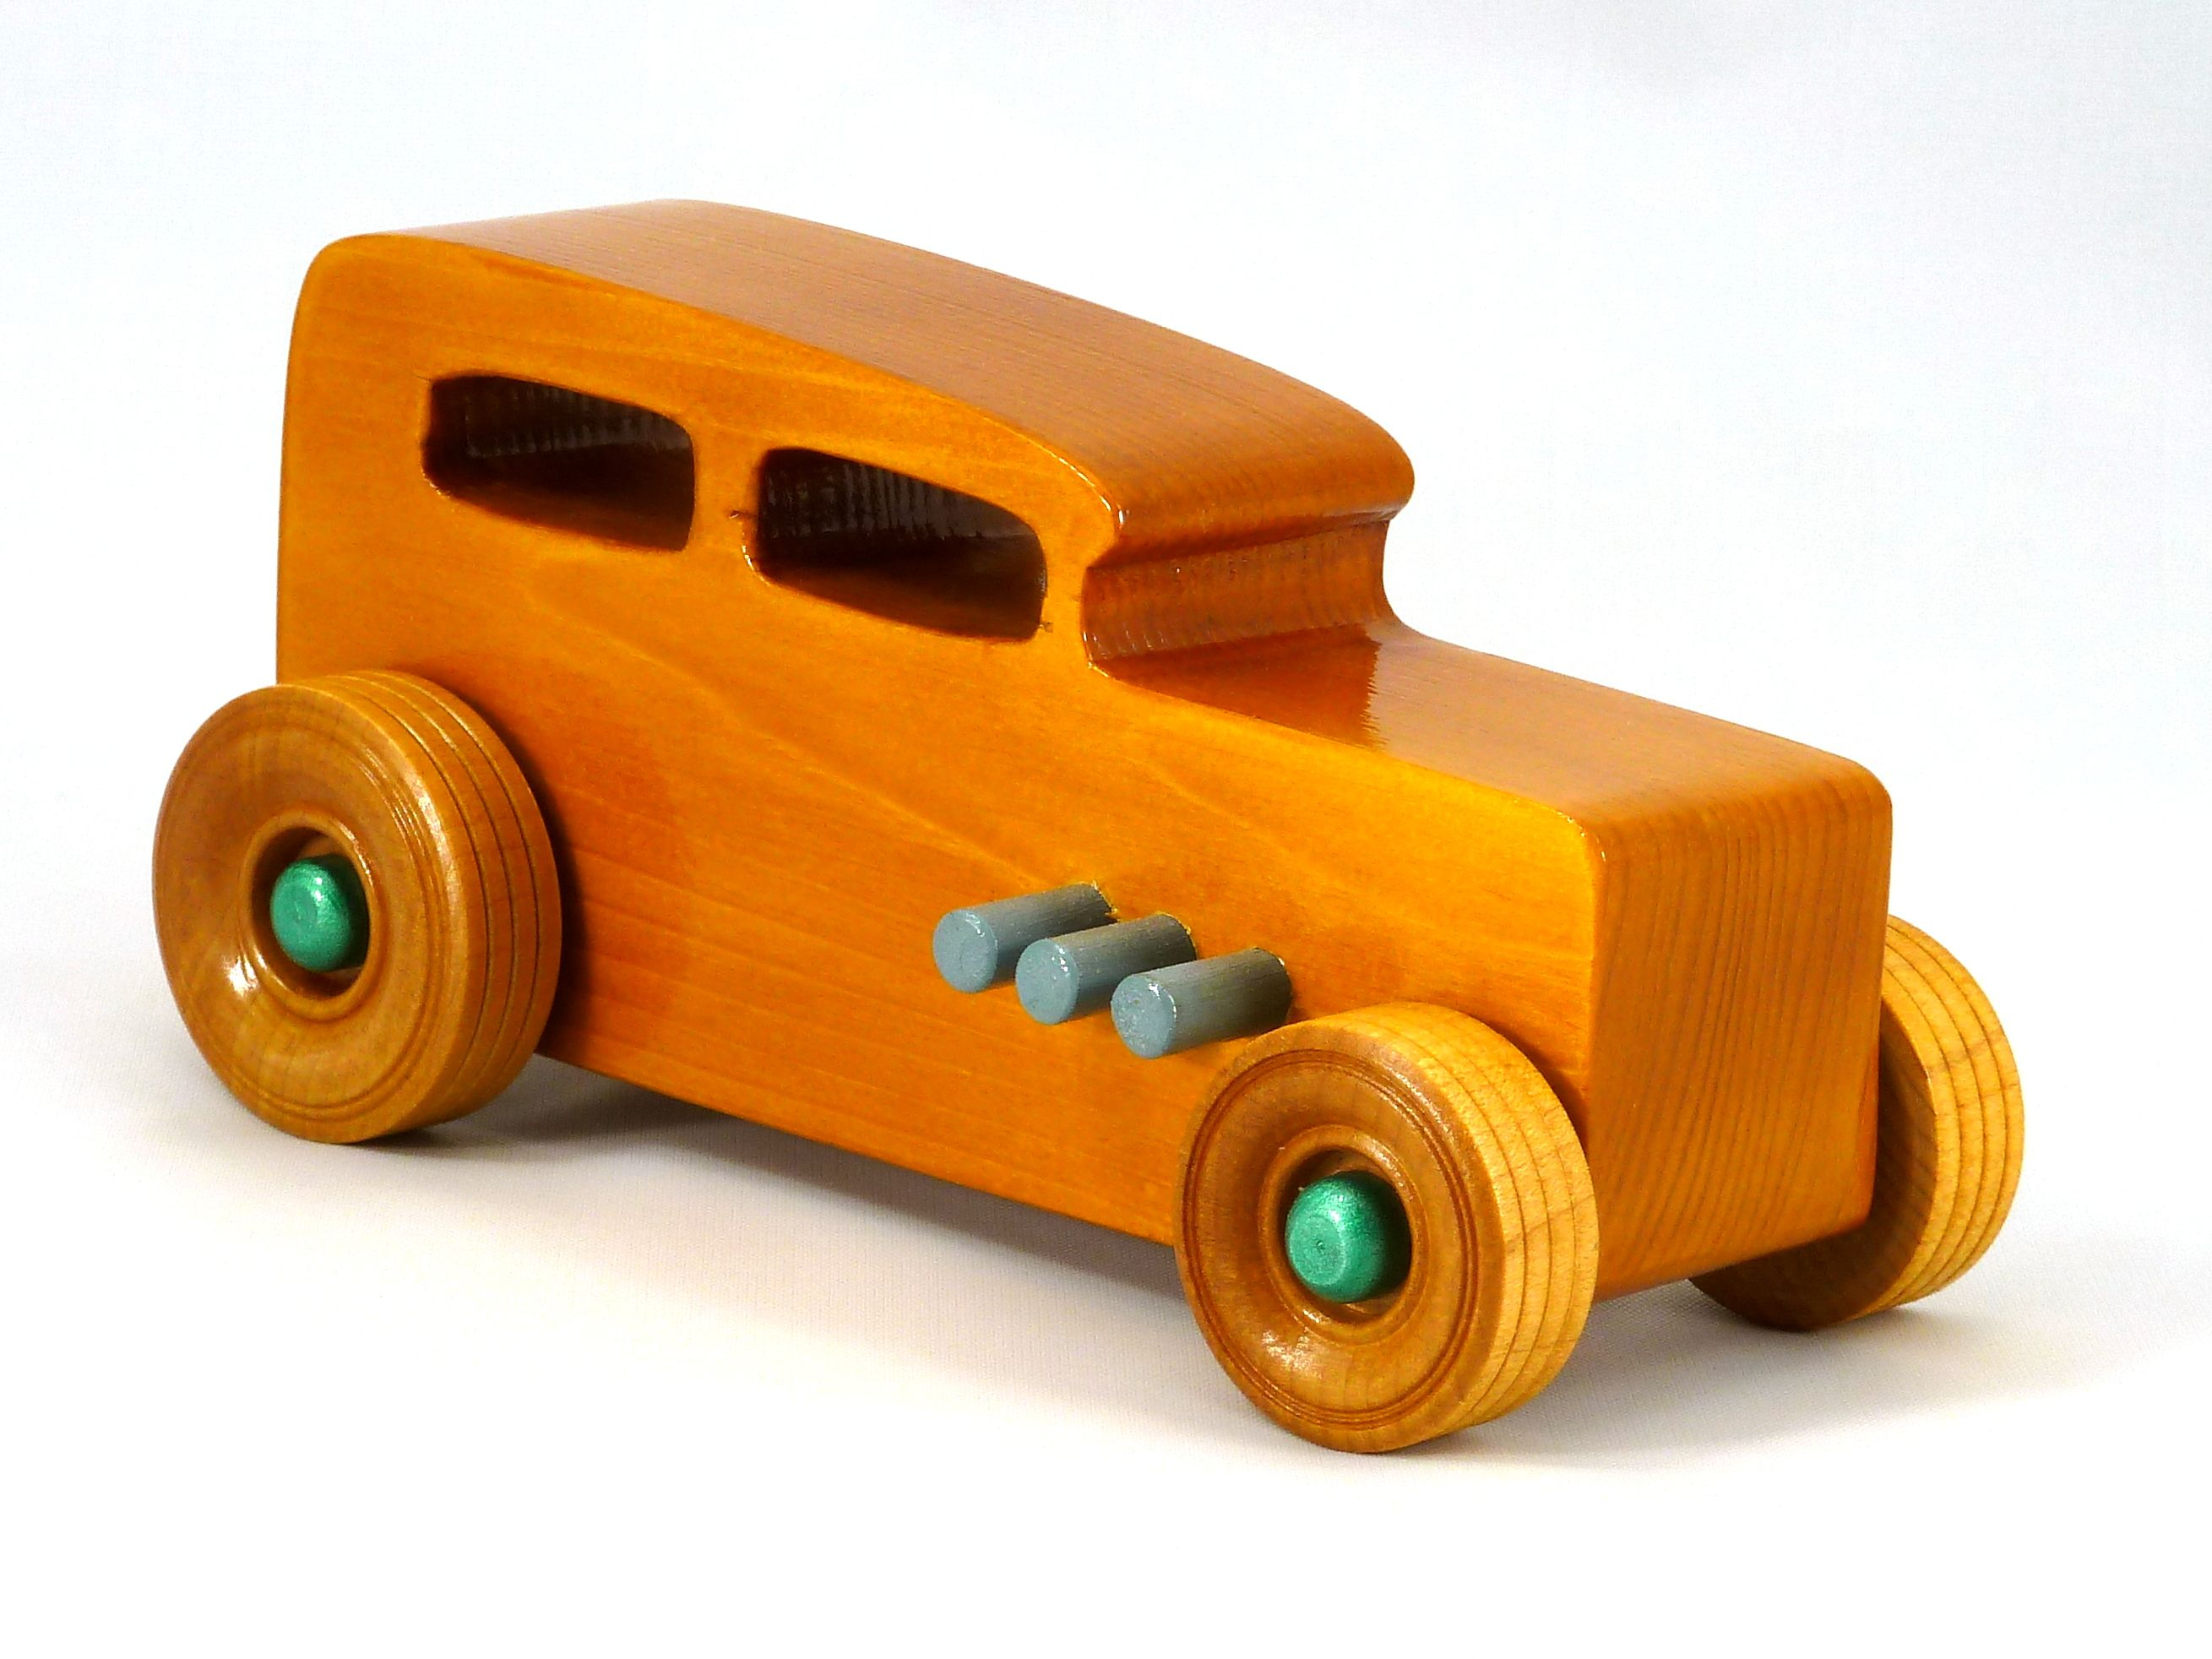 Car 3 toys  Handmade Handcradted Wooden Toy Car Hot Rod Freaky Ford  Ford